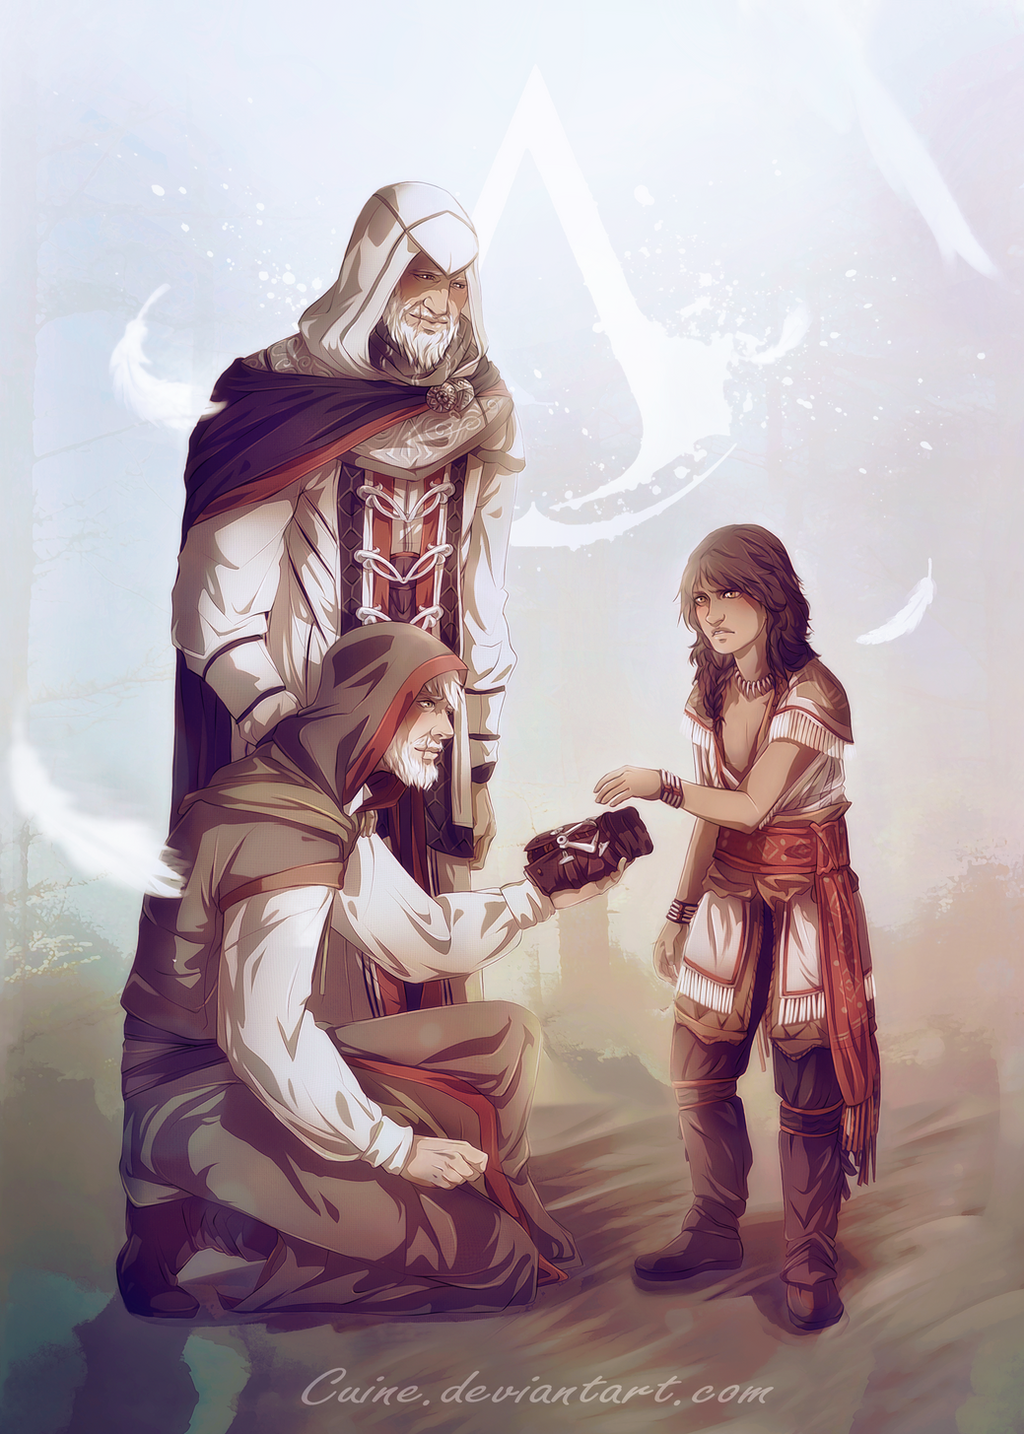 A new legacy by cuine on deviantart for Cuine